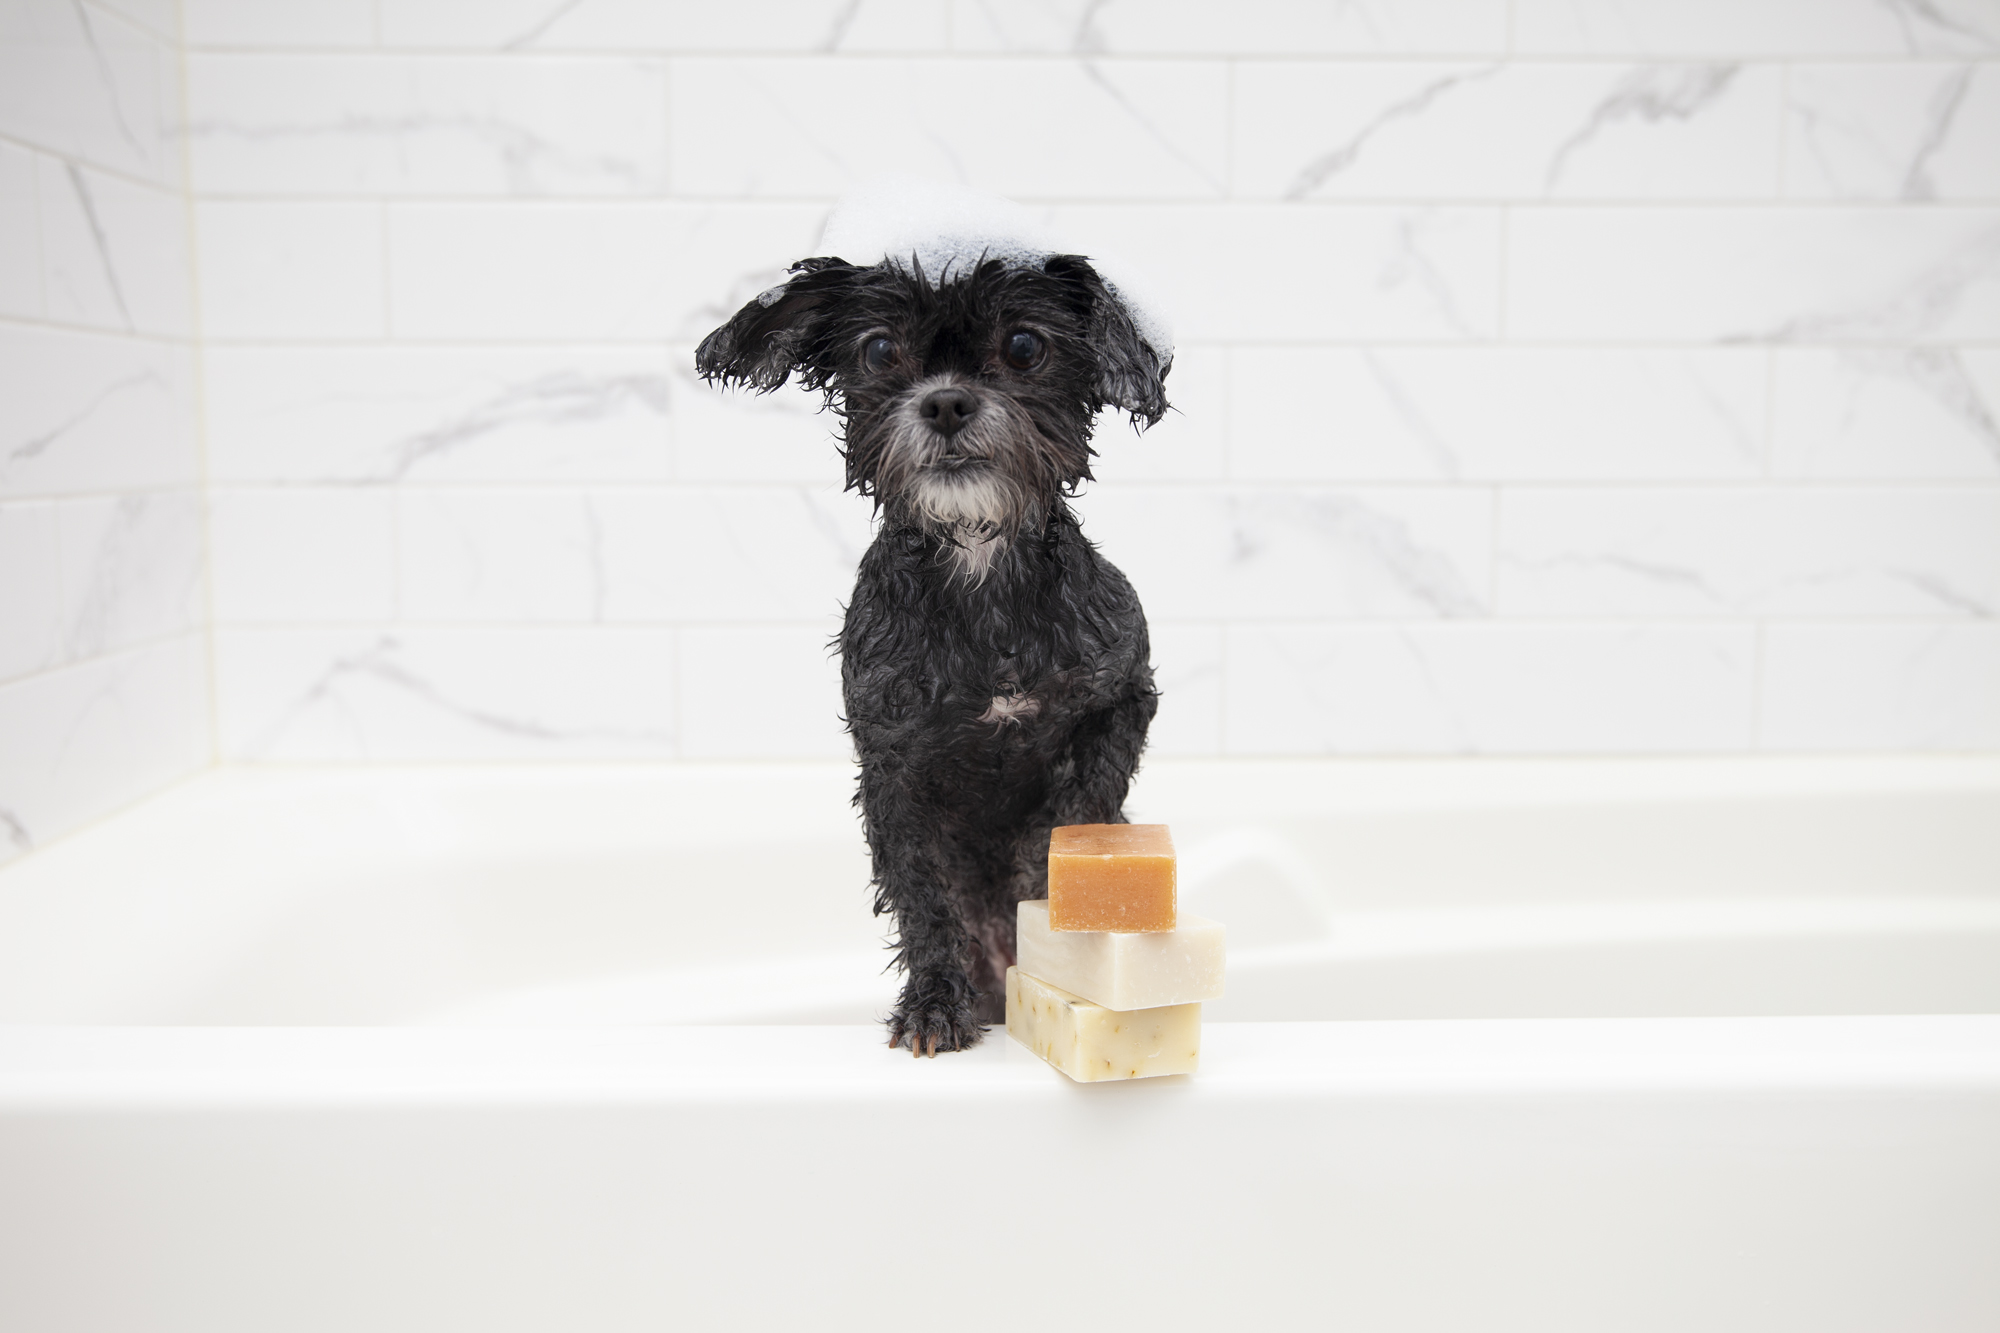 Puppy getting washed with Animals Matter Companion Soap on edge of the tub